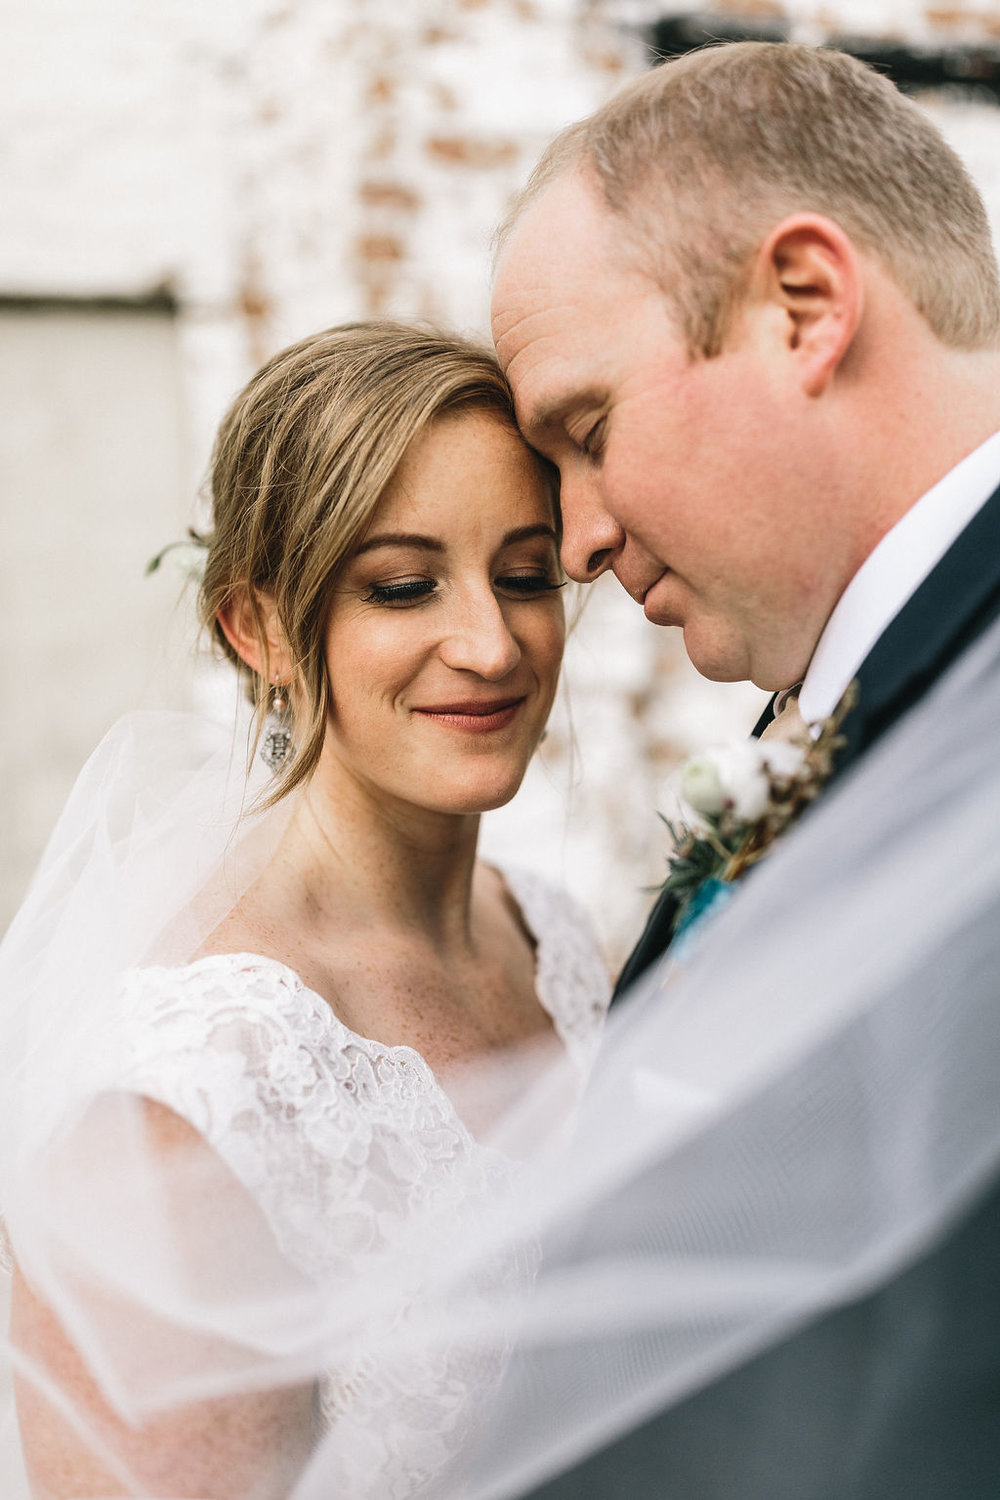 ivory_and_beau_savannah_bridal_shop_ivory_and_beau_couple_regan_and_brian_mackensey_alexander_photography_charles_h_morris_center_wedding_savannah_wedding_planner_savannah_florist_39.jpg